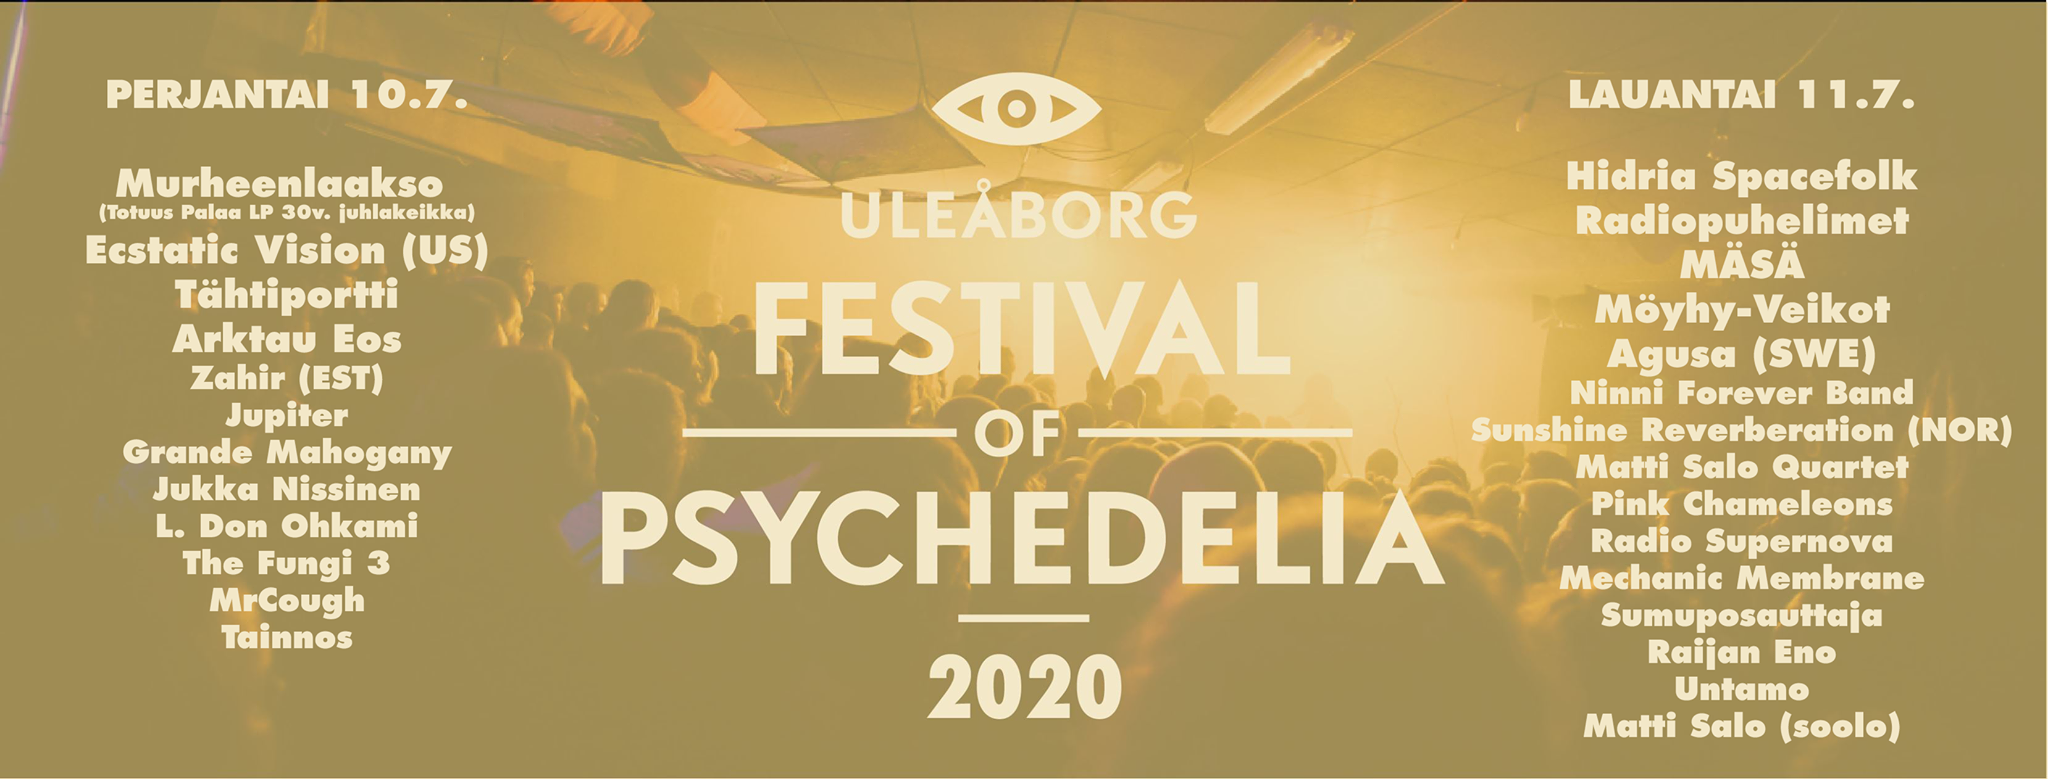 uleaborg festival of psychedelia 2020 lineup